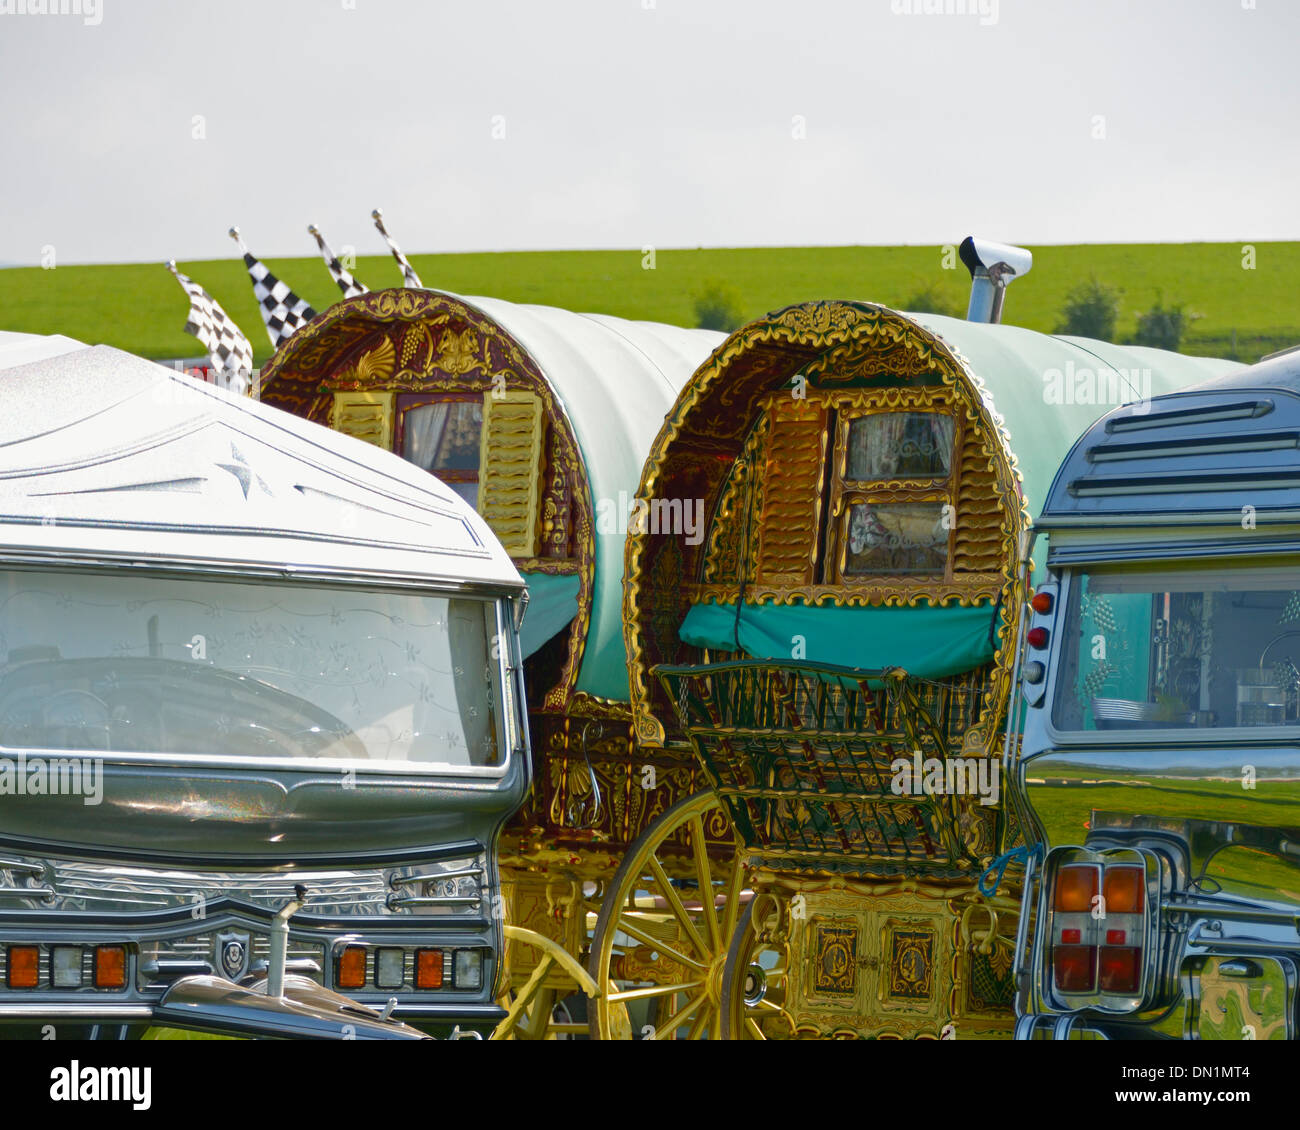 Gypsy traveller caravans. Appleby Horse Fair, June 2013. Appleby-in-Westmorland, Cumbria, England, United Kingdom, Europe. - Stock Image